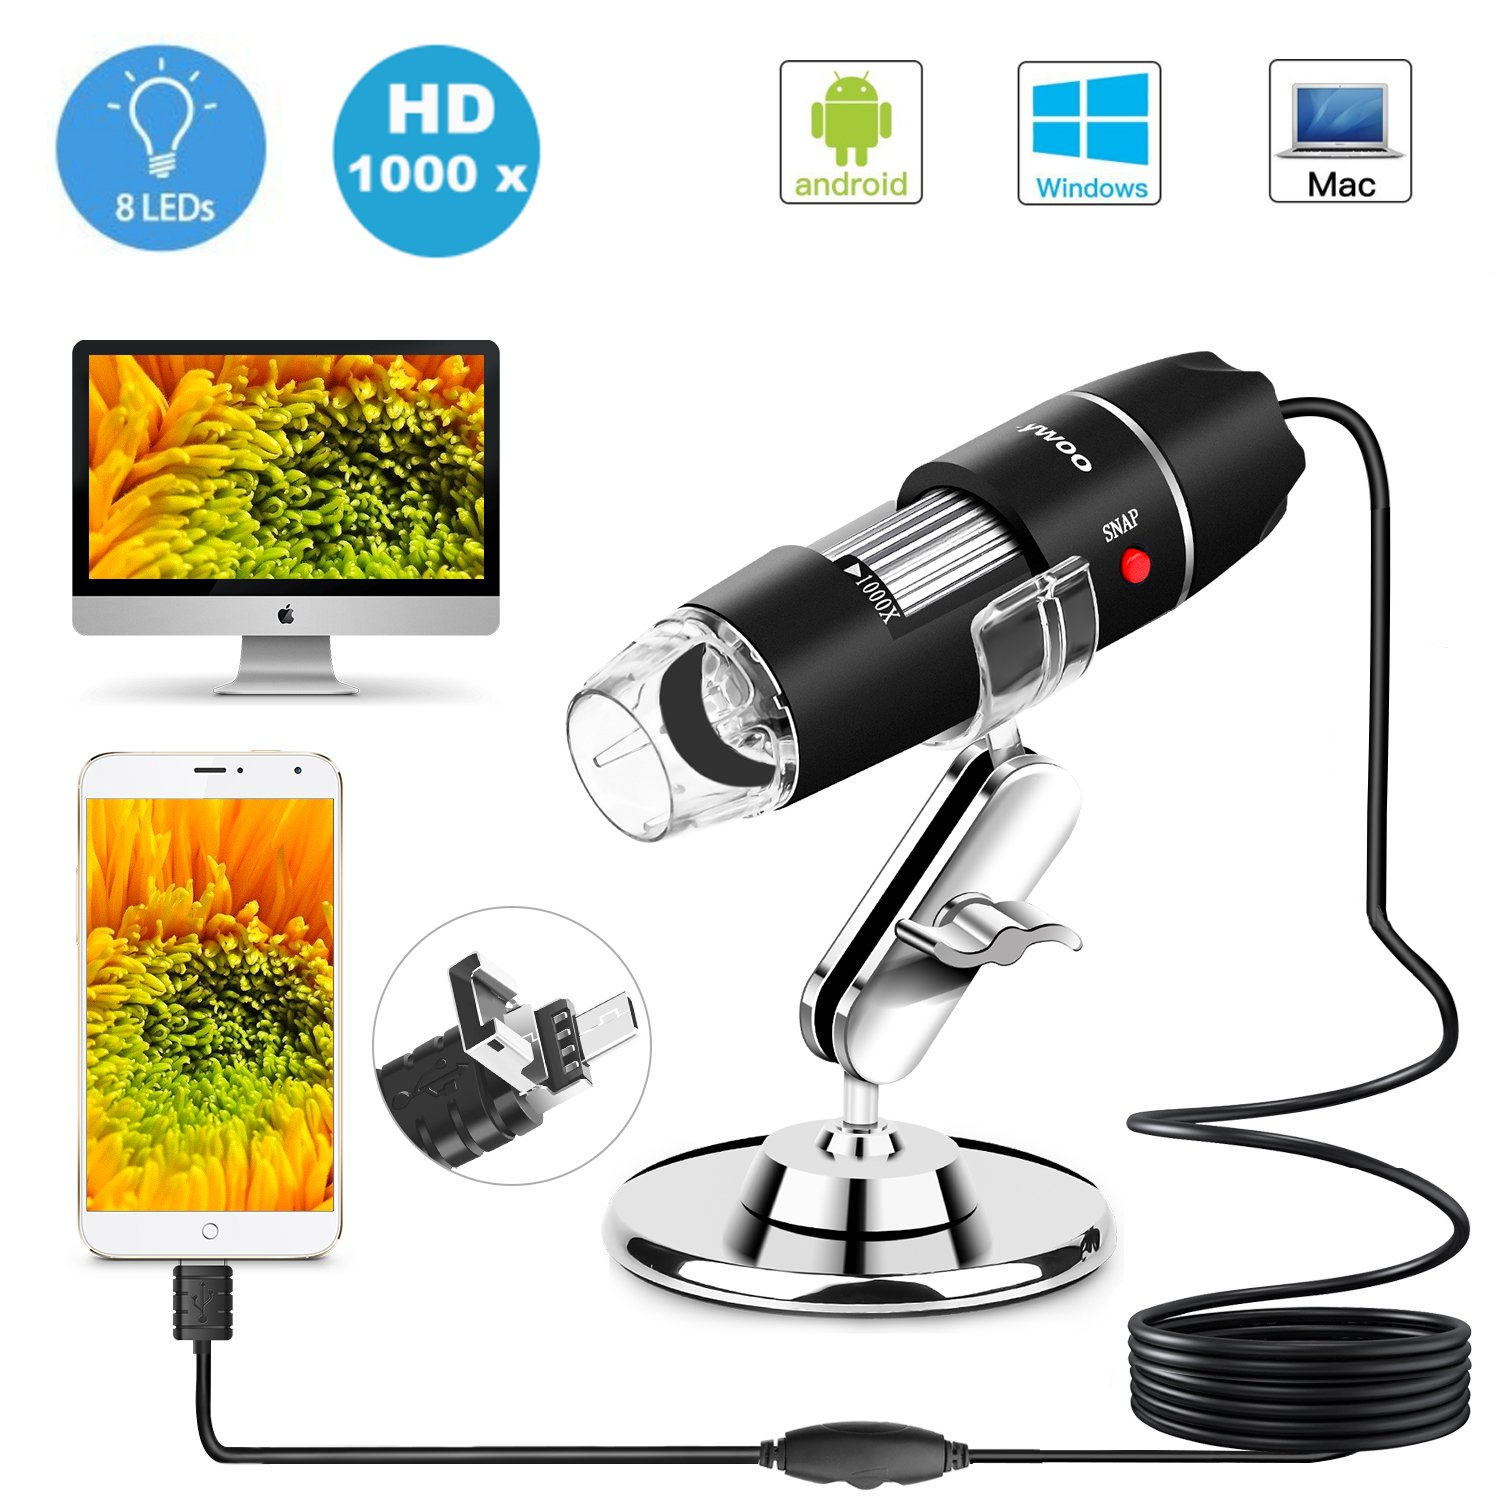 USB Microscope 8 LED USB 2.0 Digital Microscope 40 to 1000x Magnification Endoscope Mini Camera with OTG Adapter and Metal Stand Compatible with Mac Window 7 8 10 Android Linux by Sunnywoo Black 1